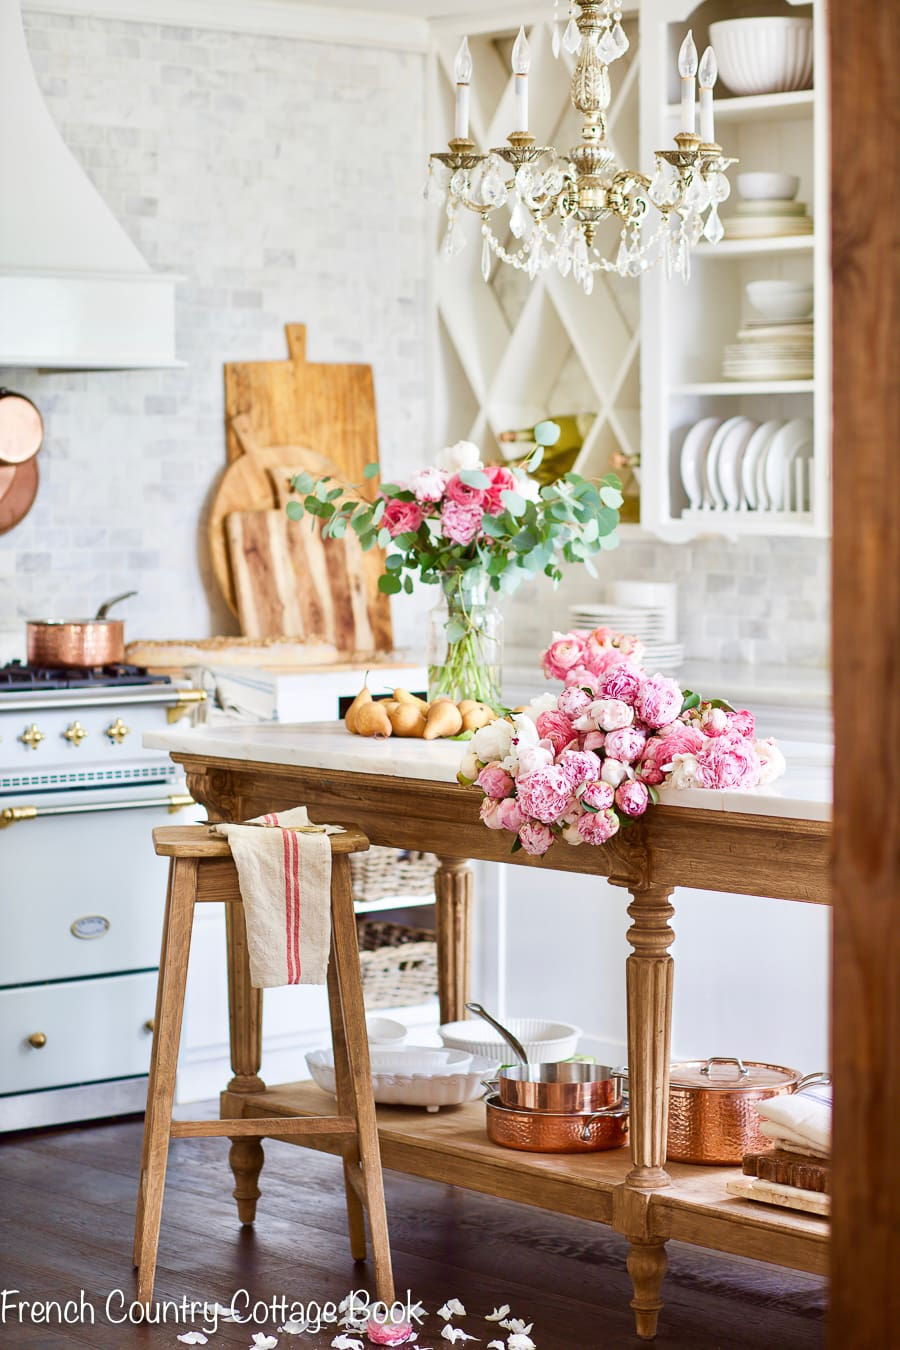 4 Ways To Add French Farmhouse Charm To Your Kitchen French Country Cottage